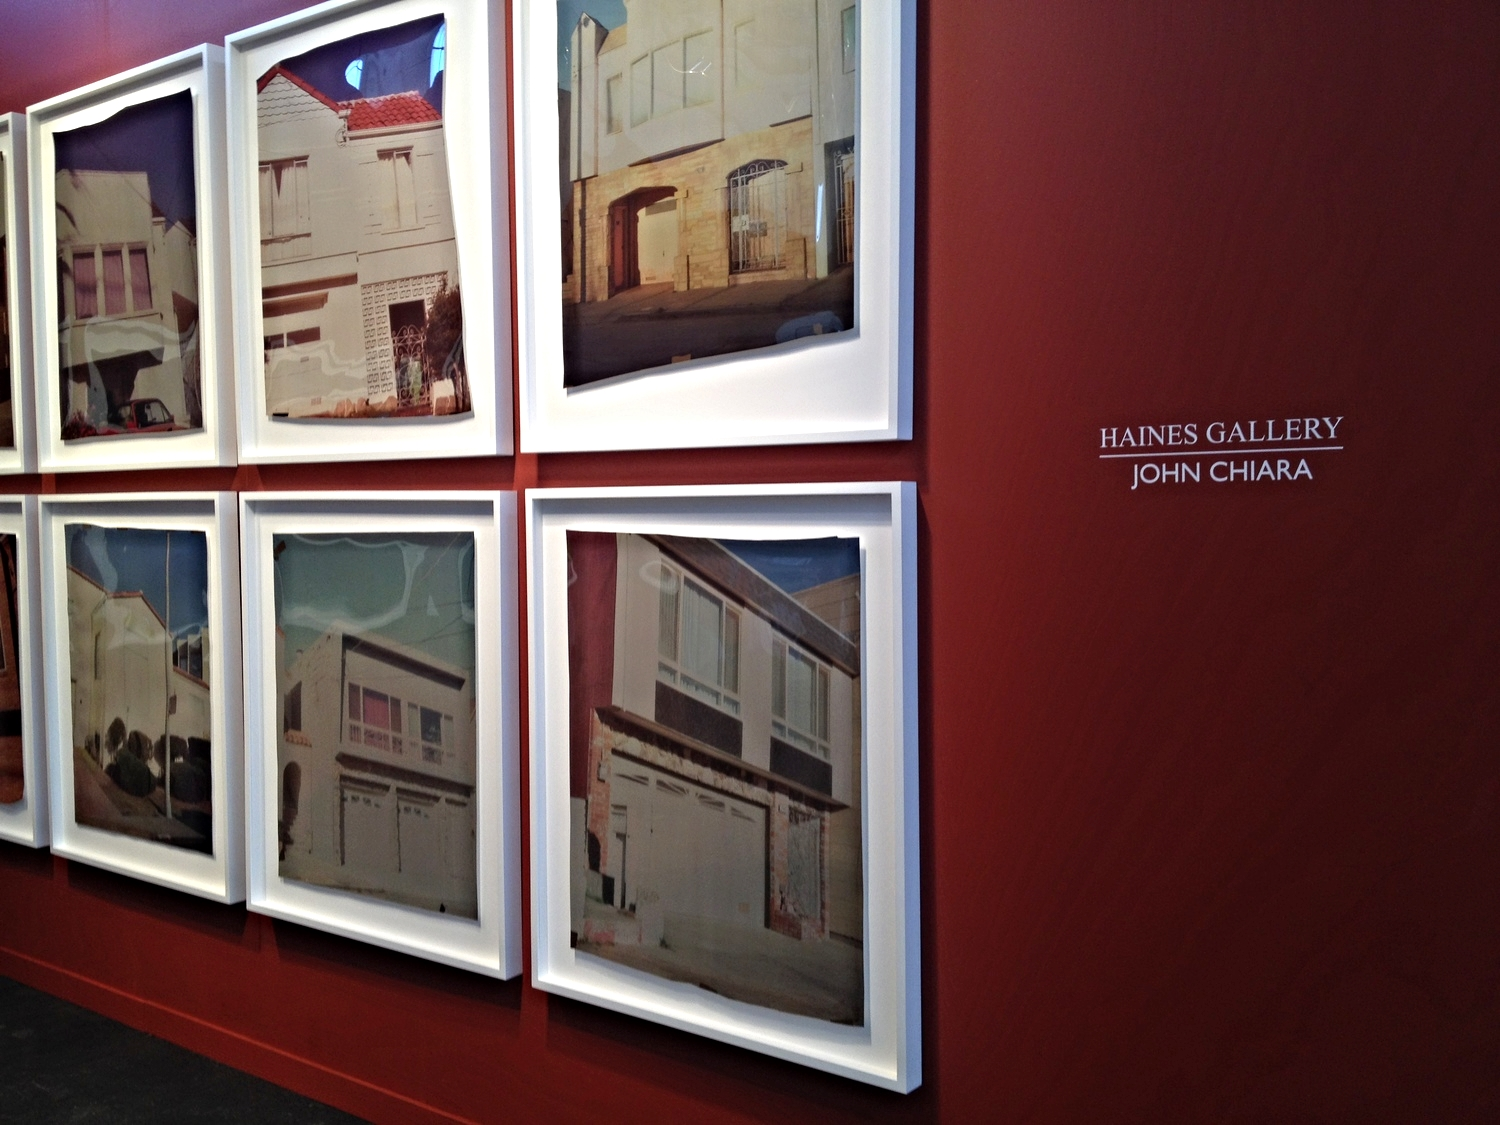 John Chiara's  Camera Obsurca Ilfochrome Photography  at  Haines Gallery